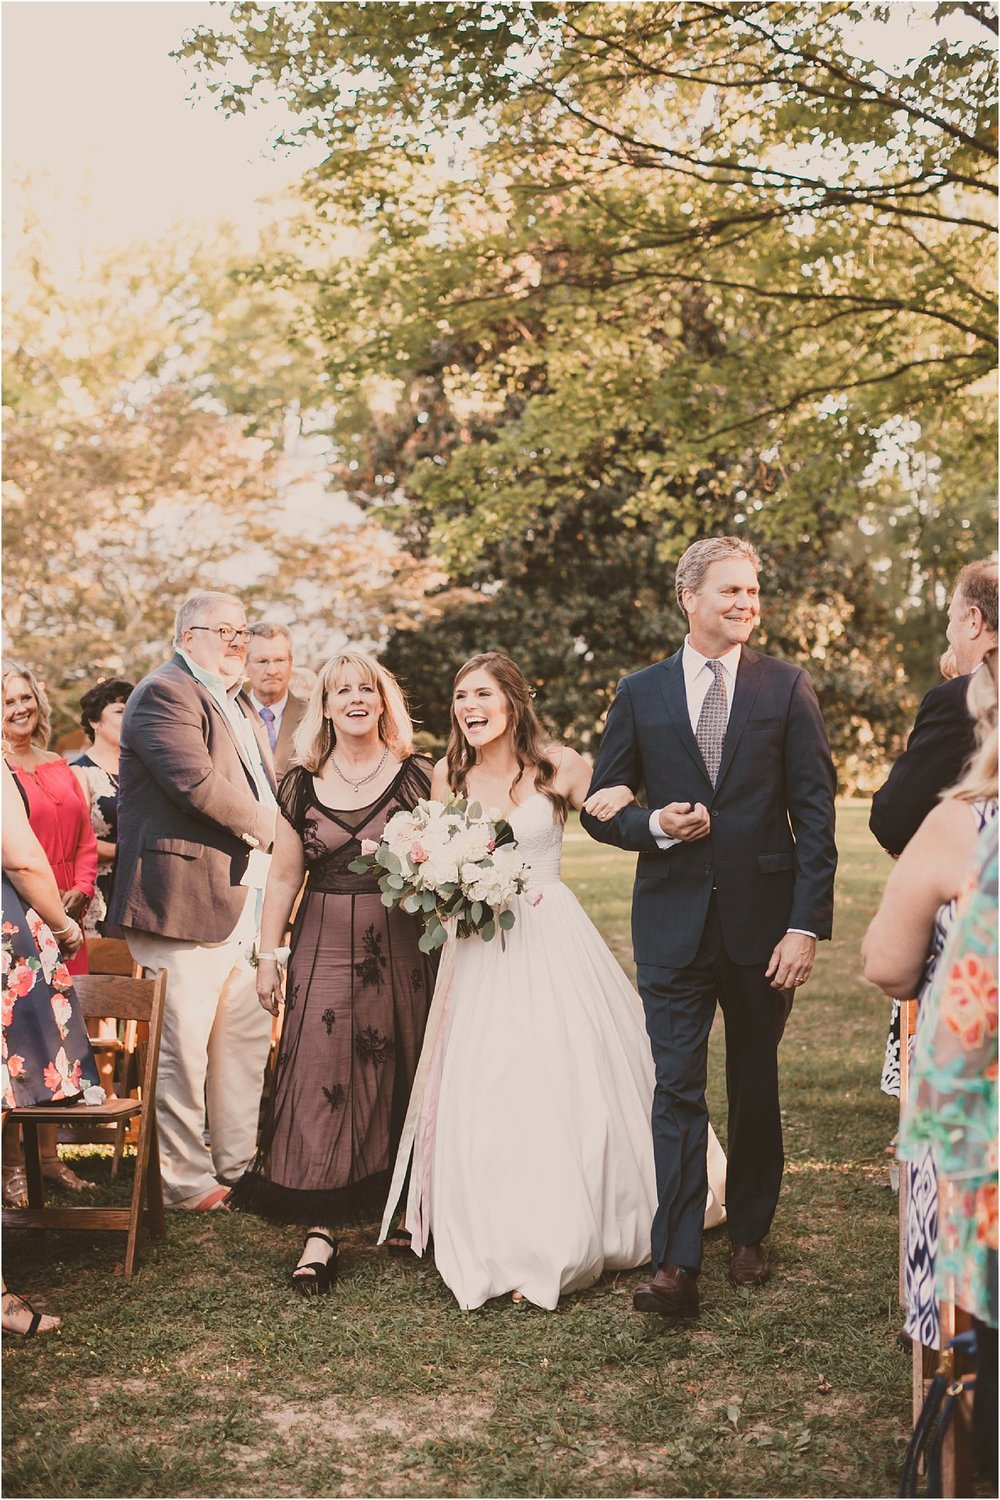 PattengalePhotography_BohoWedding_RichmondVirginia_Photographer_SevenSprings_Manor_Estate_Wedding_Hannah&Thomas_Elegant_Fall_Bohemian_blush_gold_farm__0060.jpg